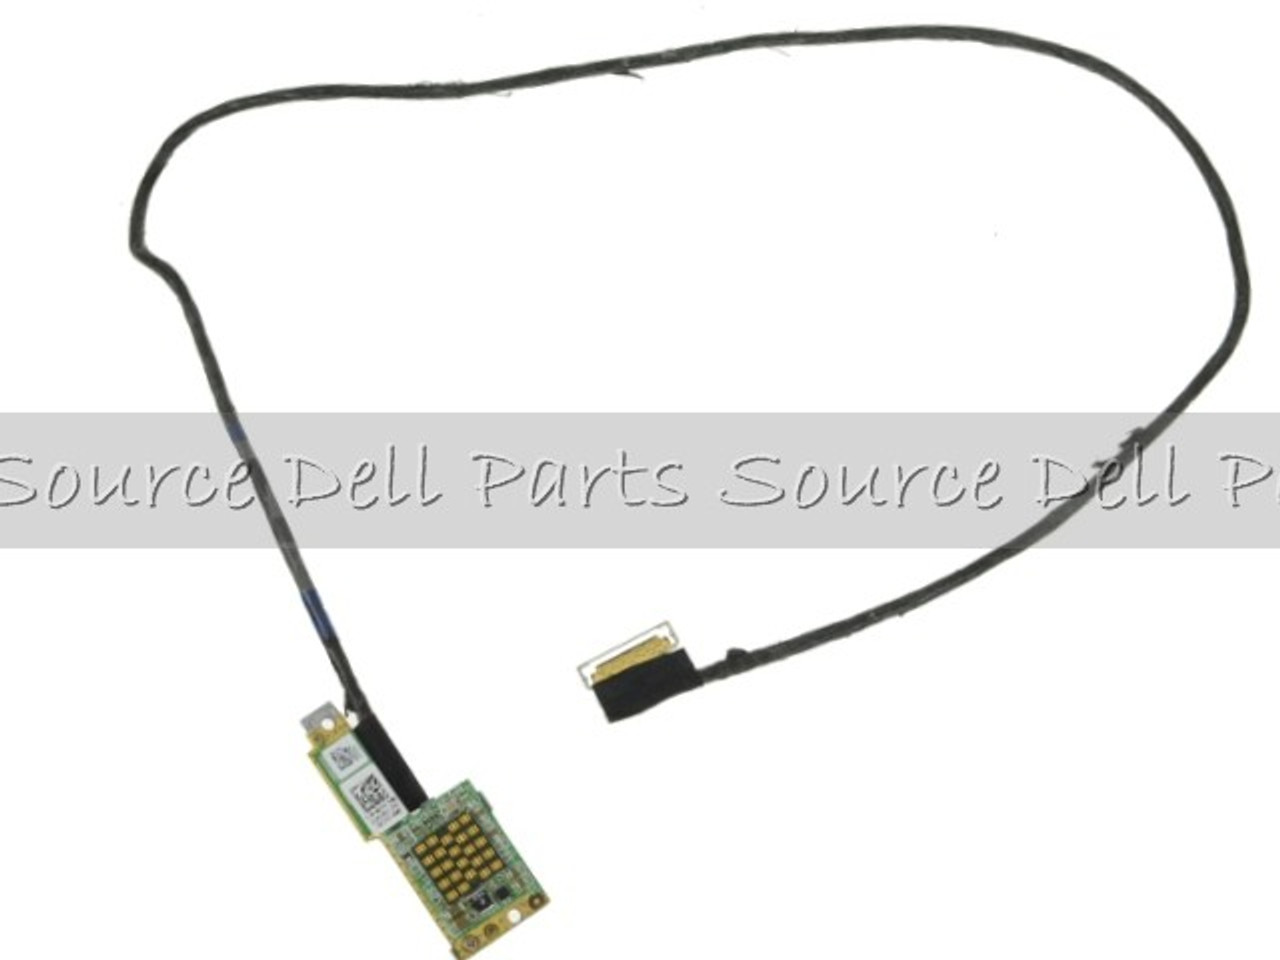 Alienware M14XR2 WirelessHD WiHD Transmitter Circuit Board with Cable - 6YC1W